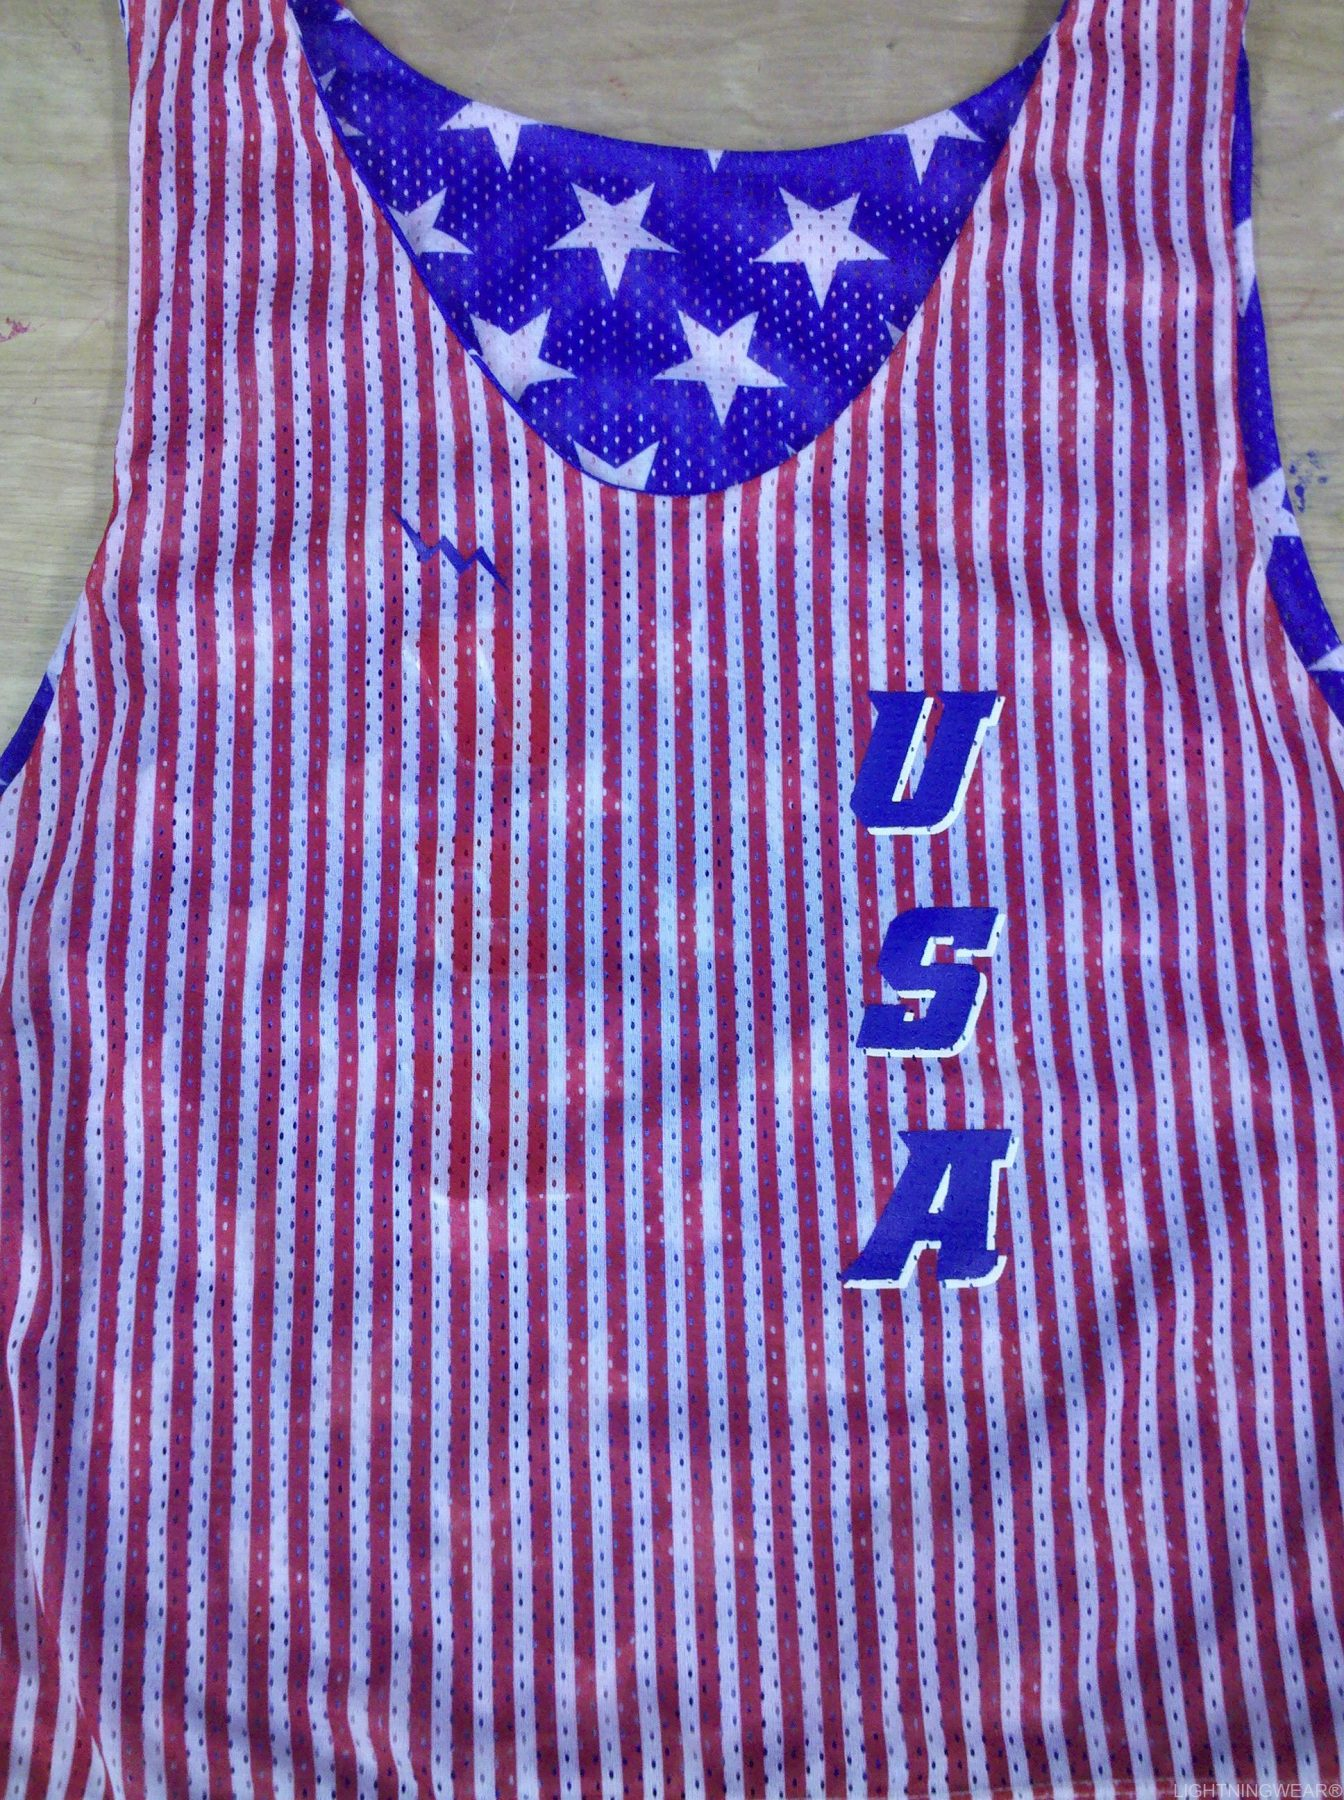 usa stars and stripes pinnies